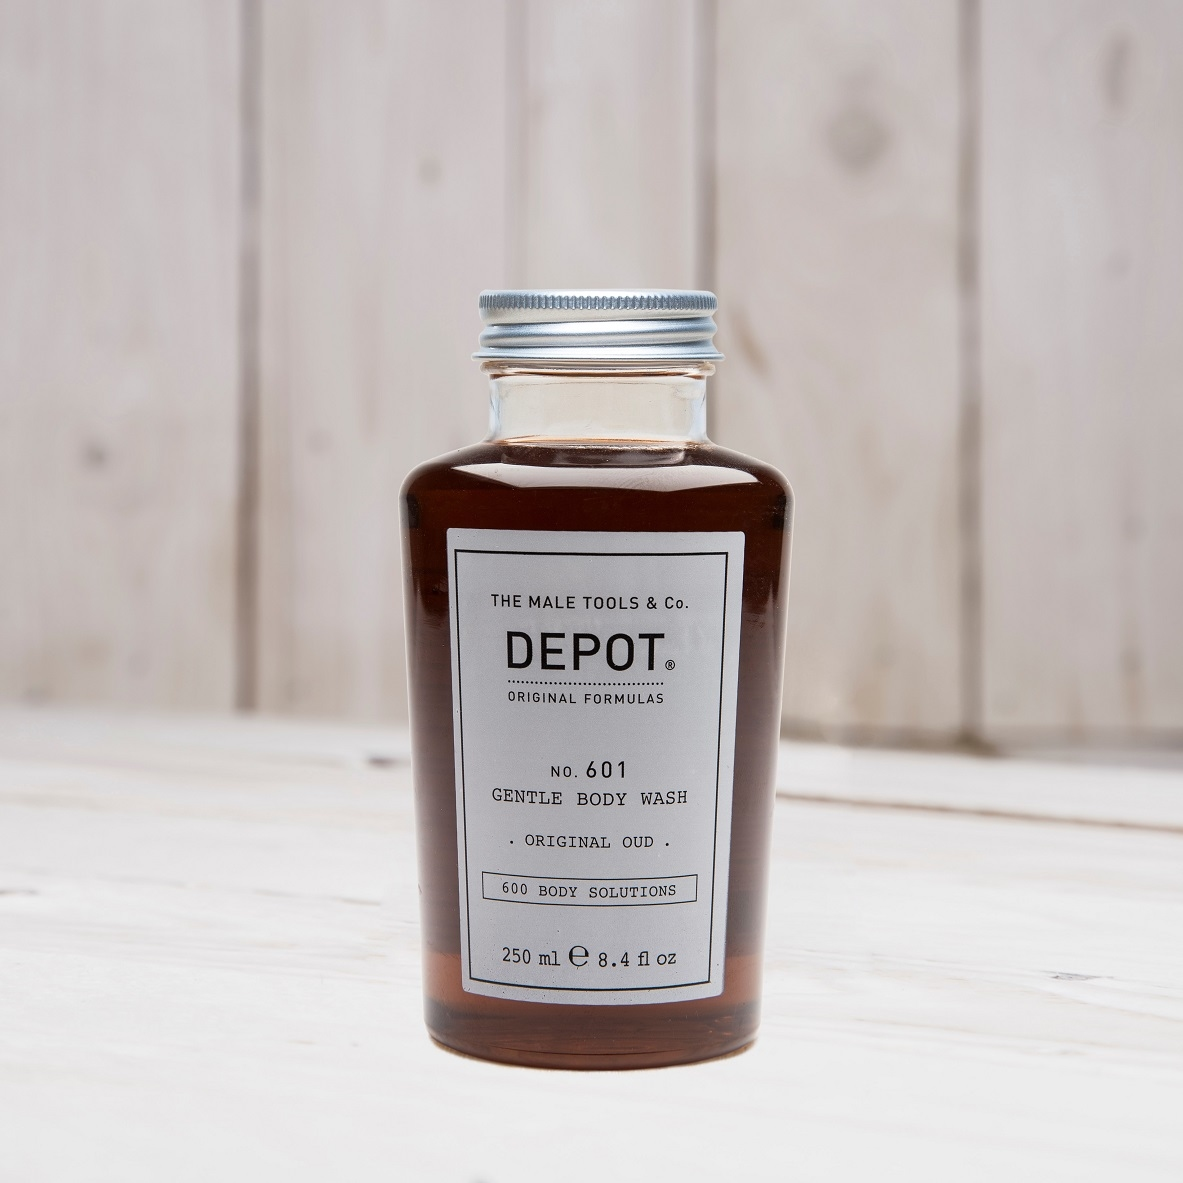 DEPOT No.601 GENTLE BODY WASH ORIGINAL OUD